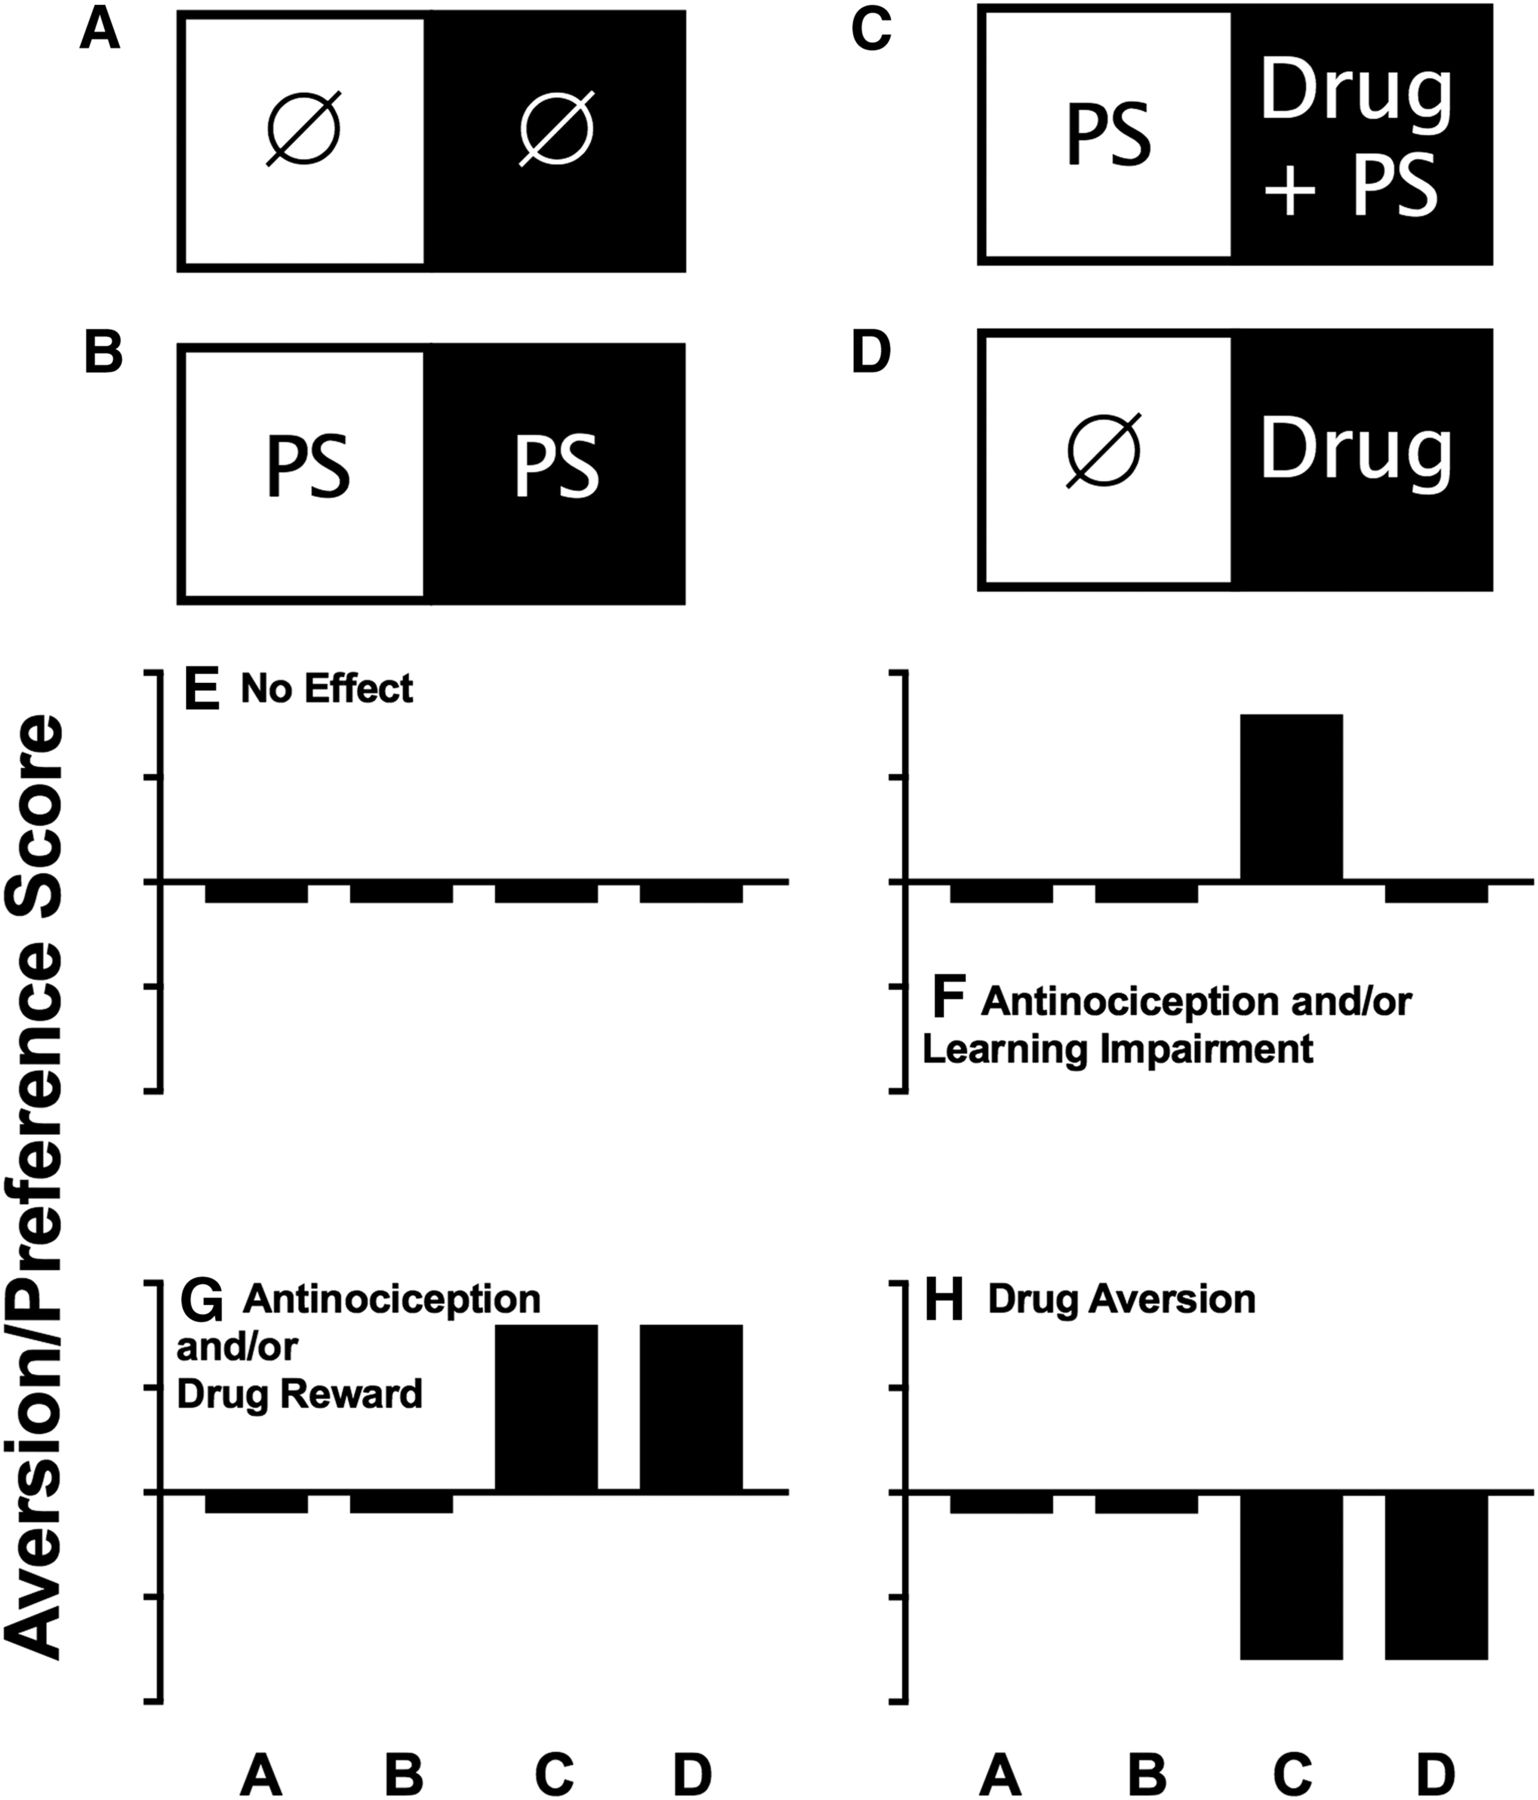 Core Outcome Measures in Preclinical Assessment of Candidate